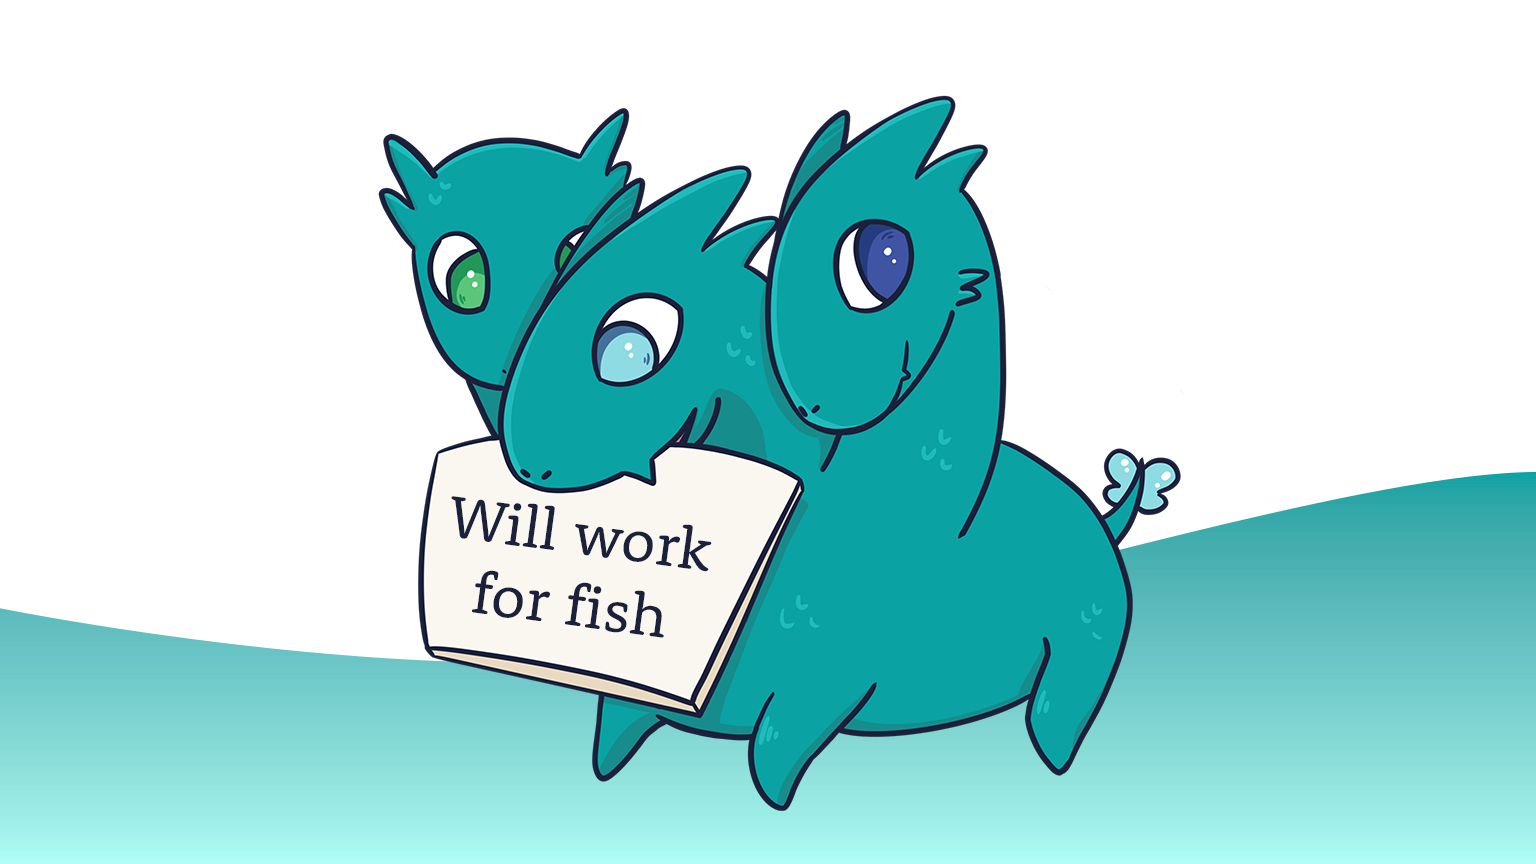 Will work for fish